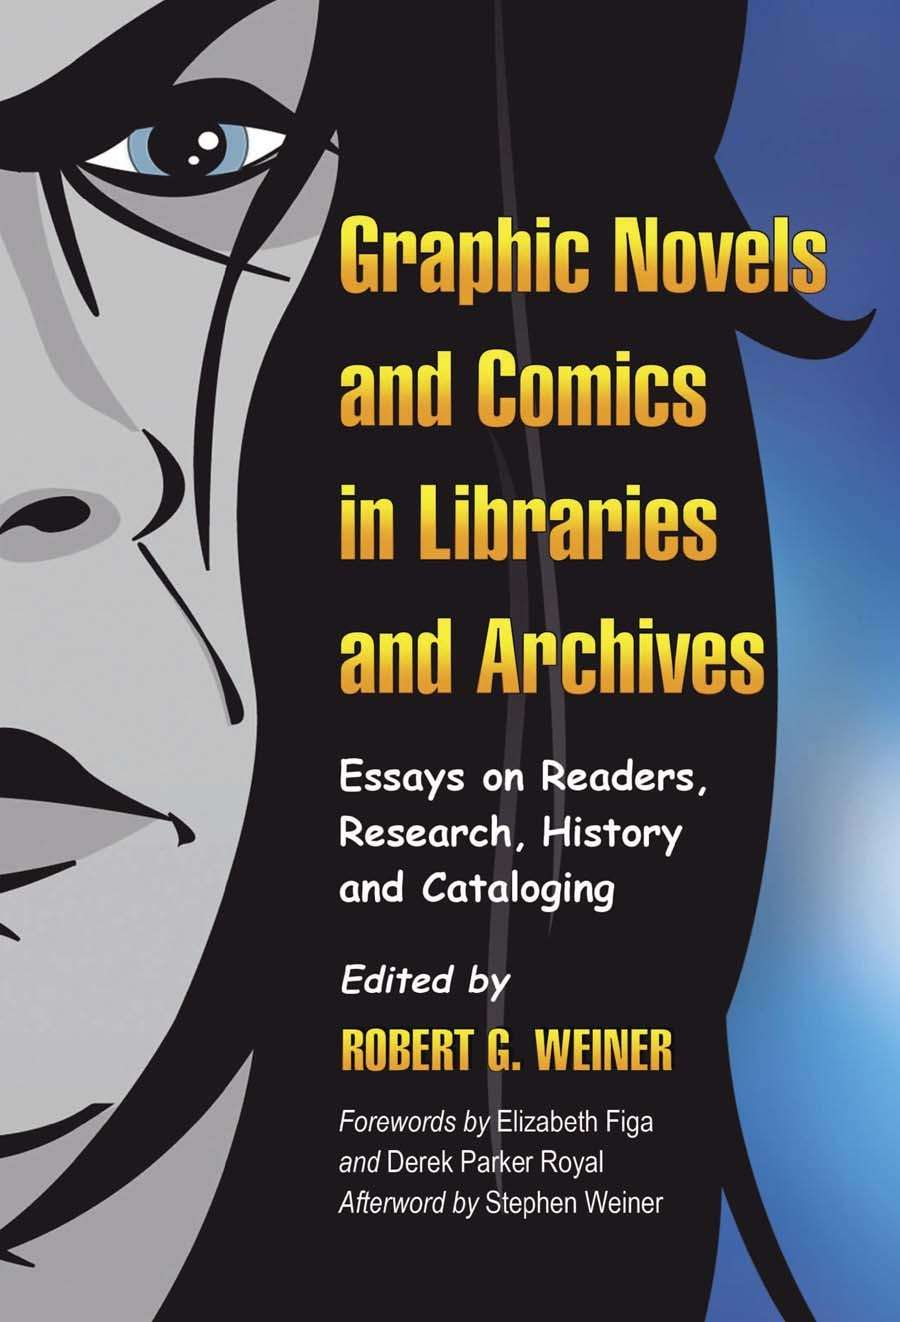 essays on graphic novels Graphic novels - a valid form of literature essaysgraphic novels have gained popularity over the past several years and can take many forms such as fiction, memoirs, documentaries, nonfiction, fairy tales, and mythology these texts fill the shelves of most public and school libraries media speci.